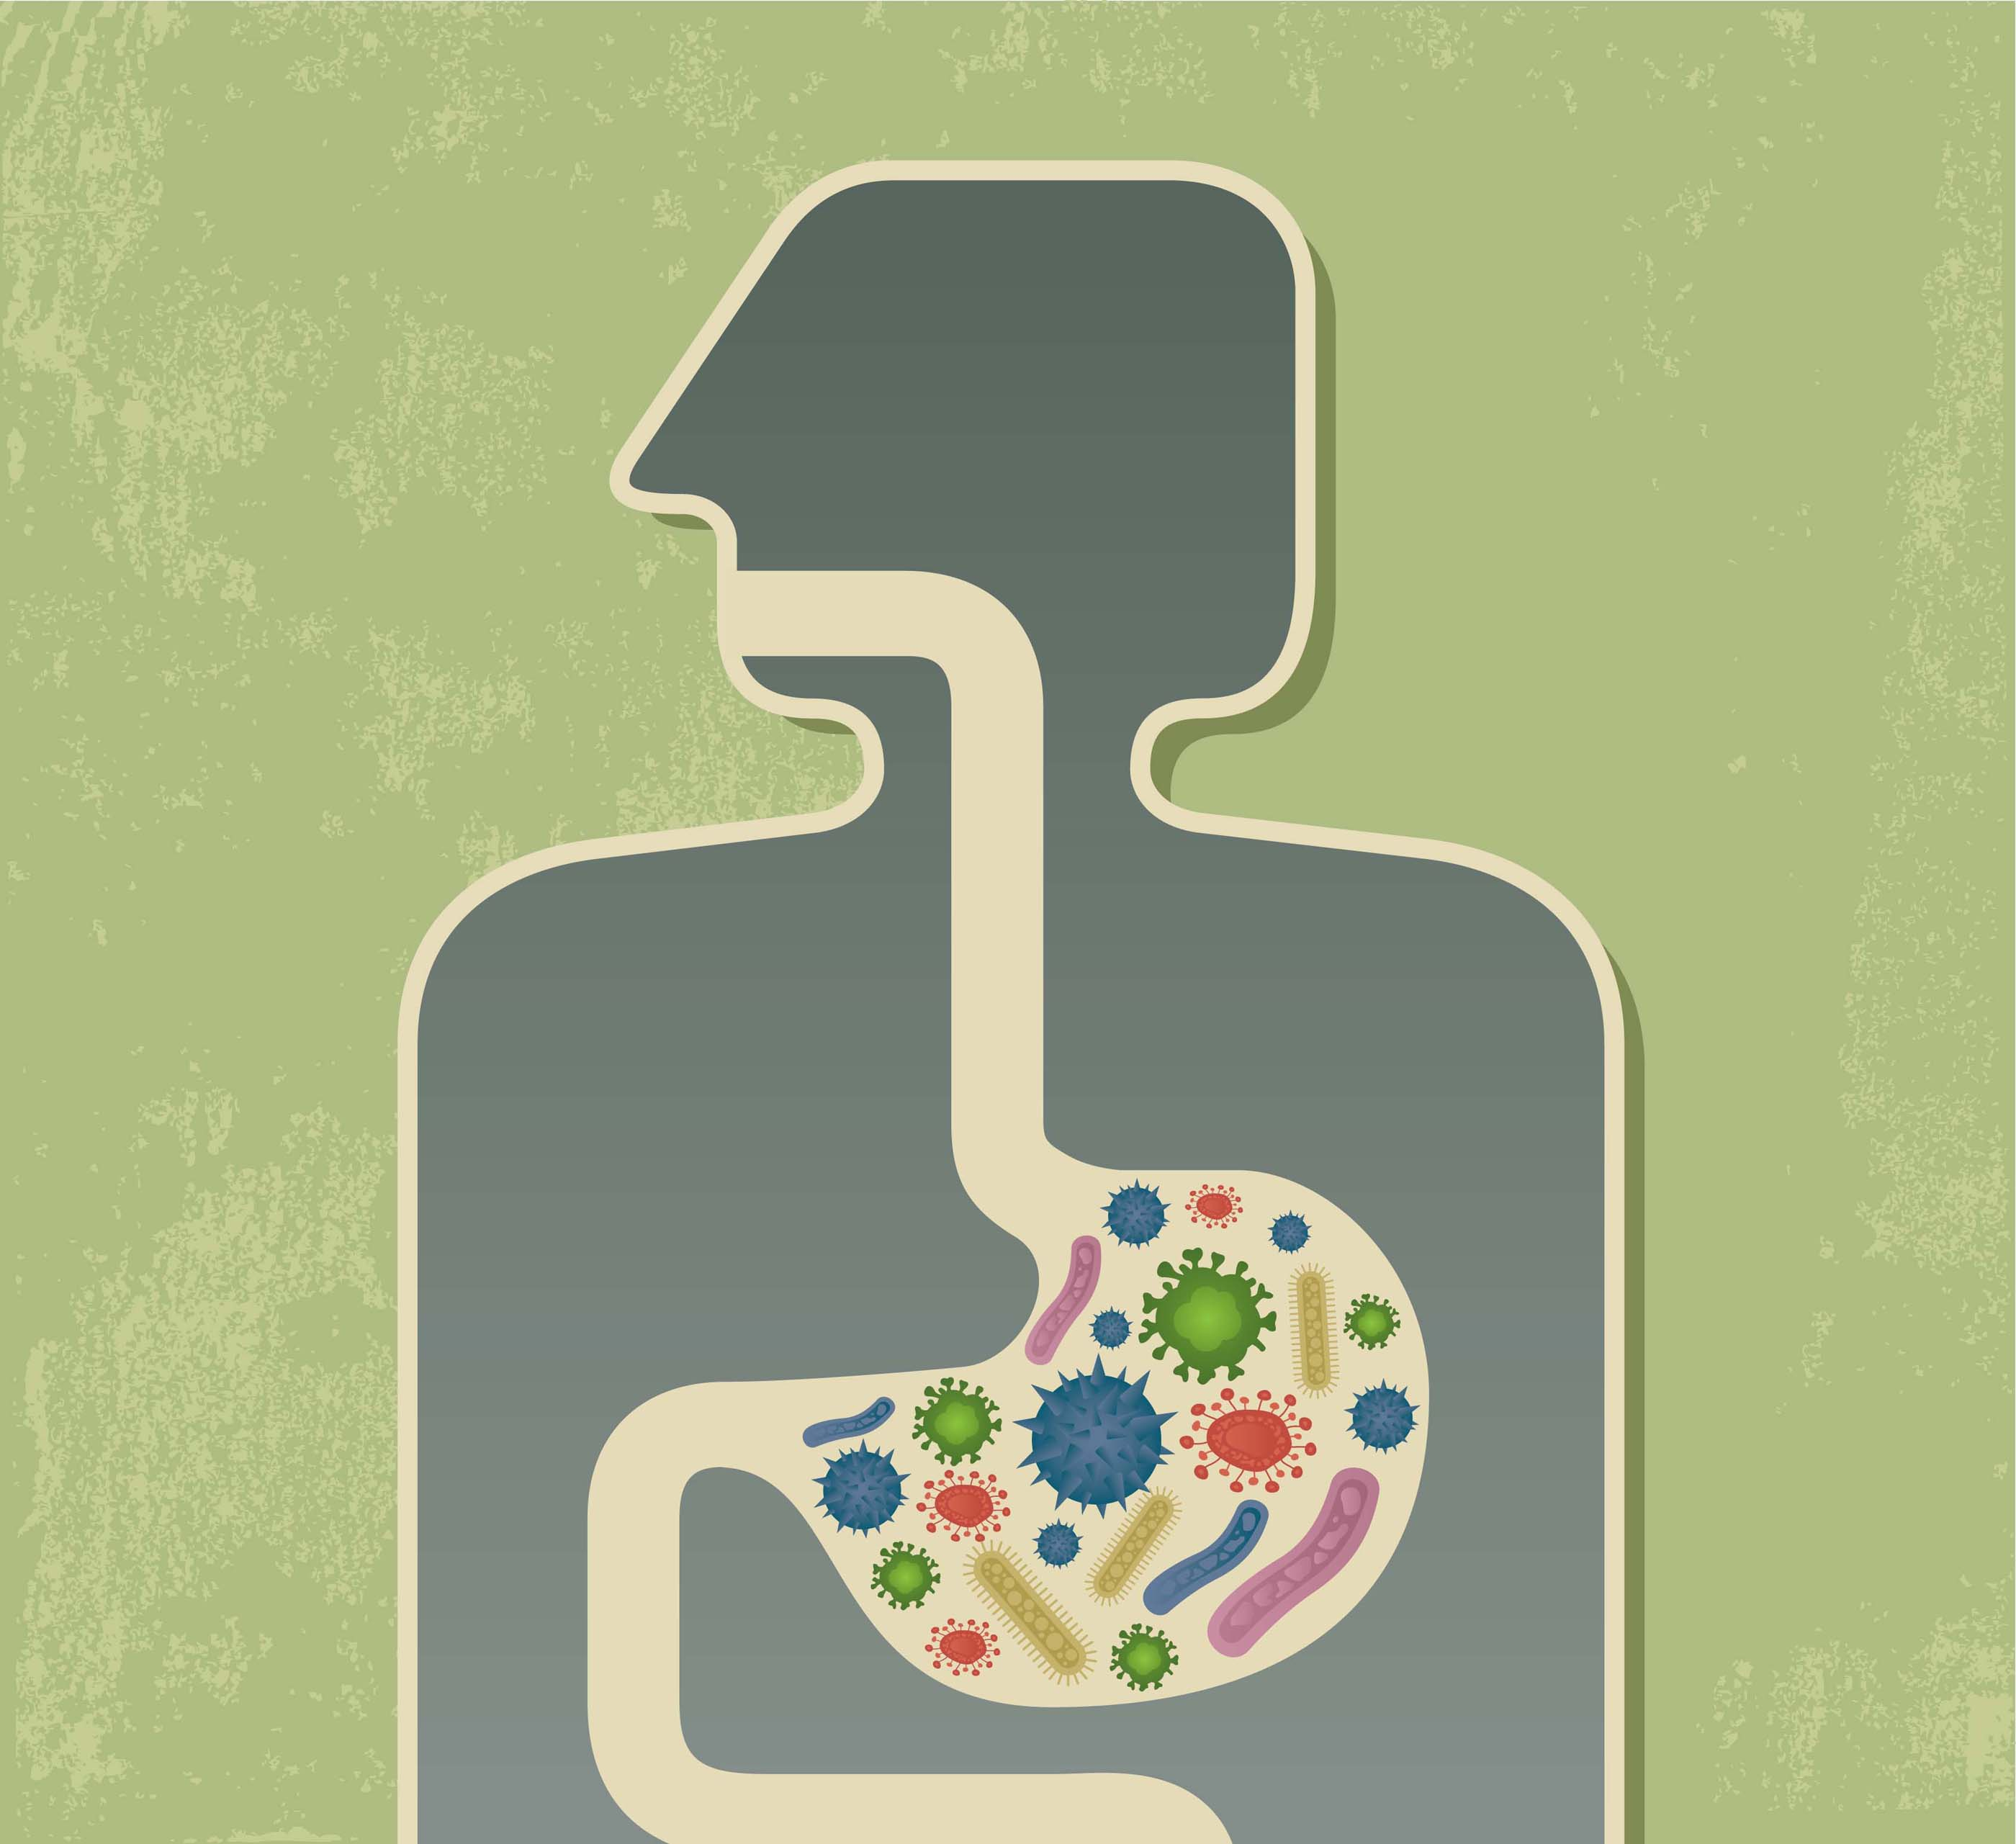 DNA Sequencing Used to Study Changes in Gut Microbiome